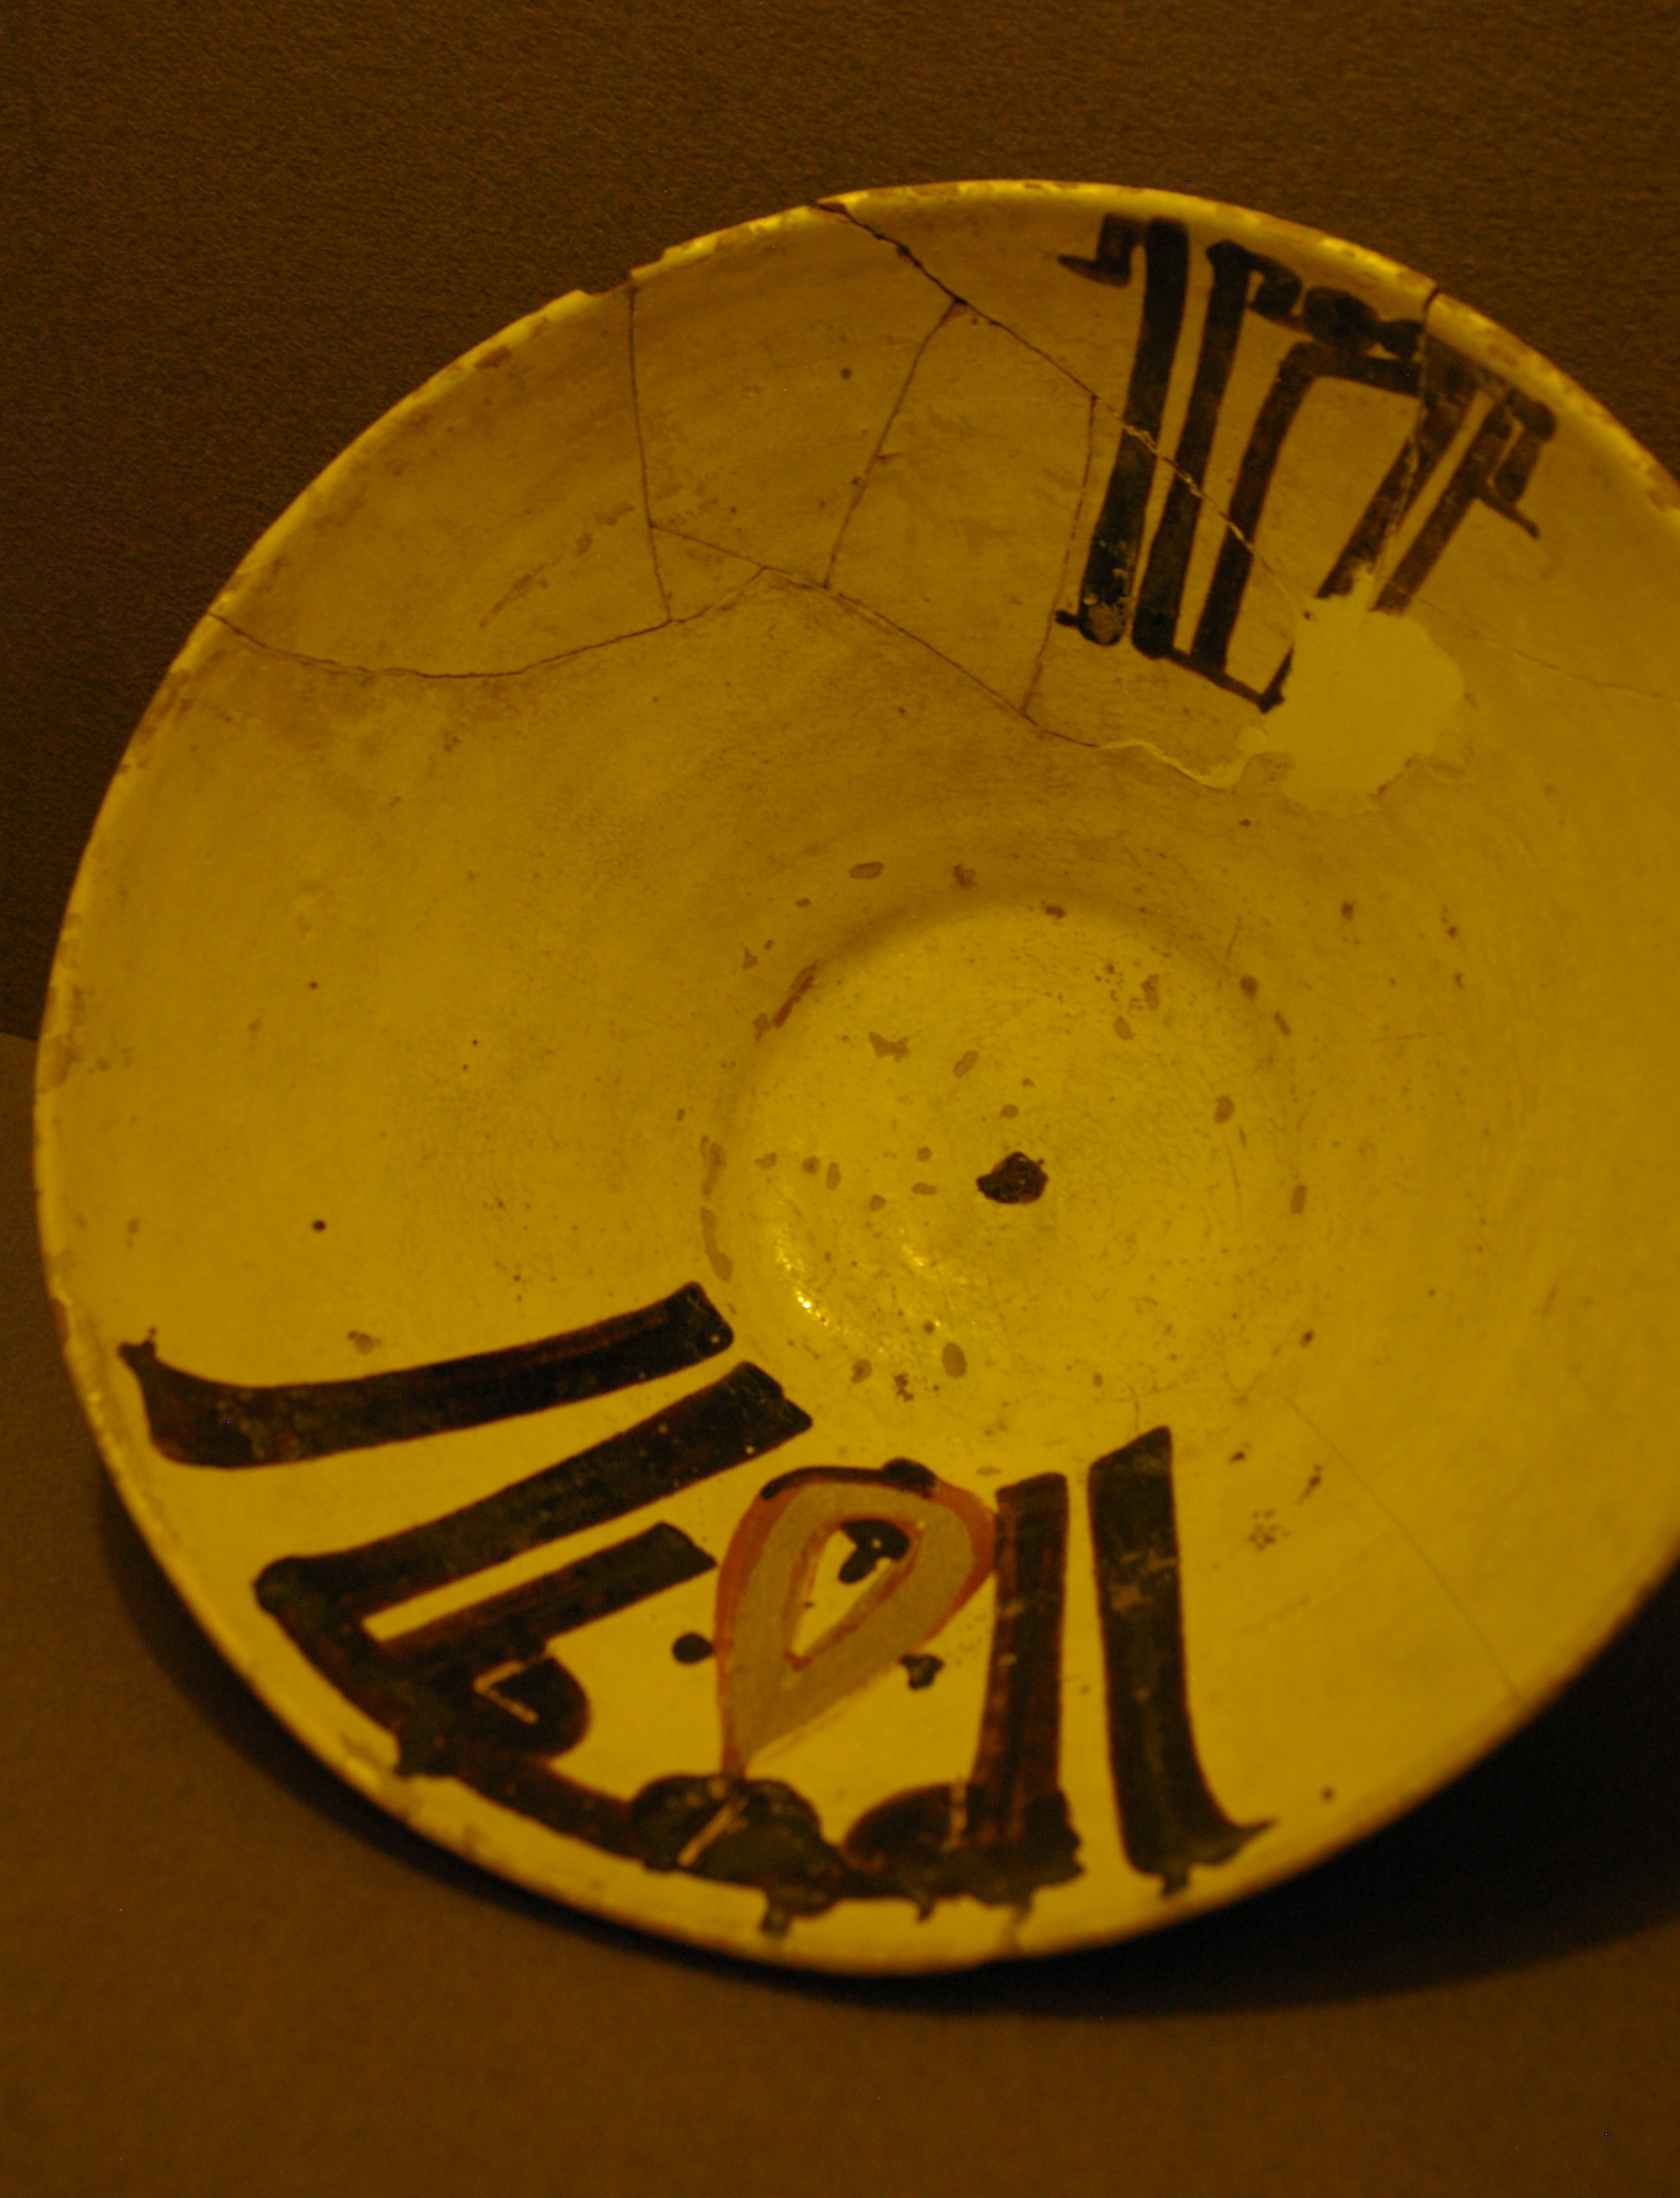 Bowl with Islamic calligraphy, 13th century AD, Neyshabour